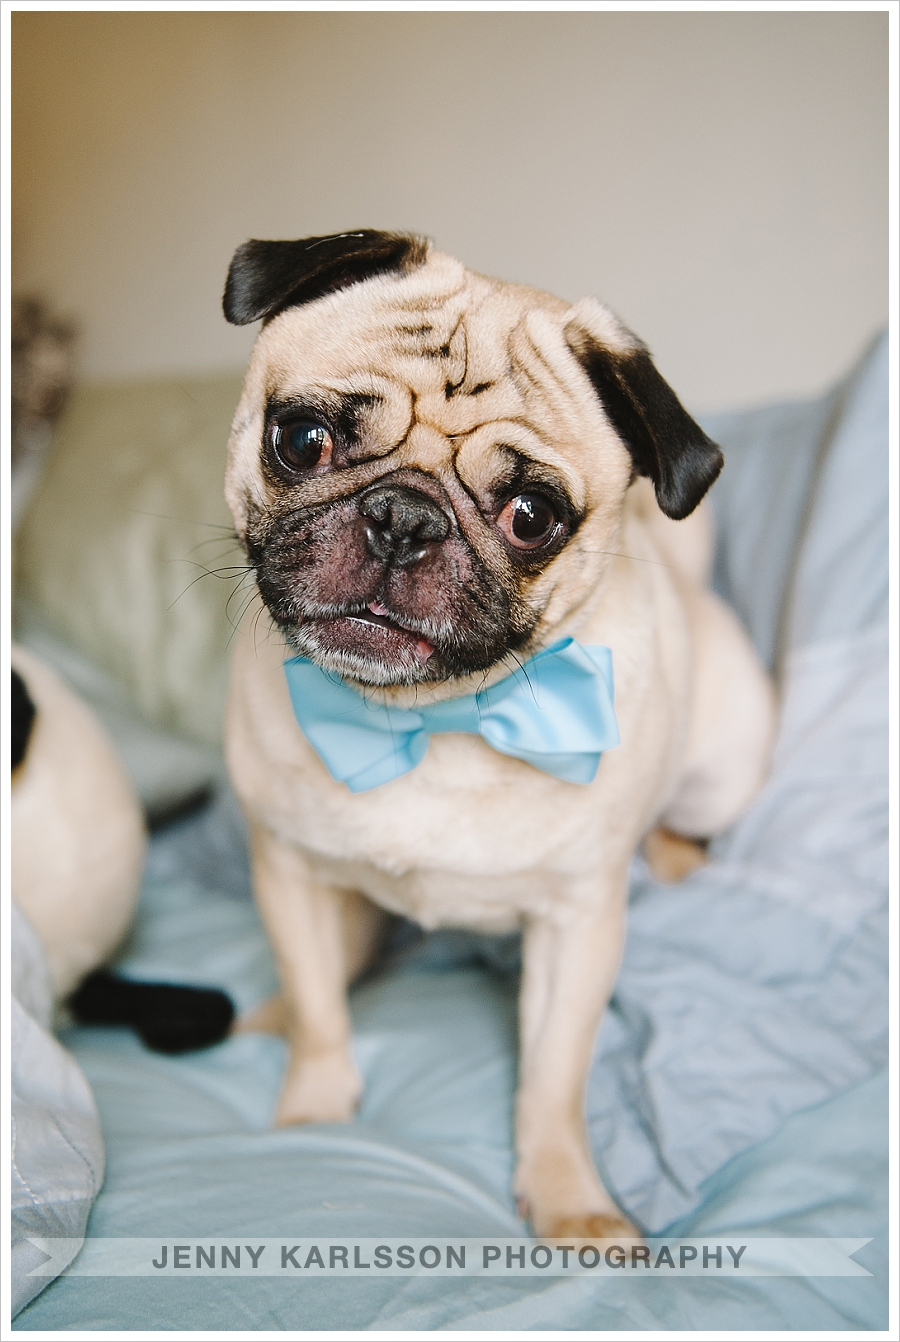 Pug in bow-tie - pittsburgh pet photographer